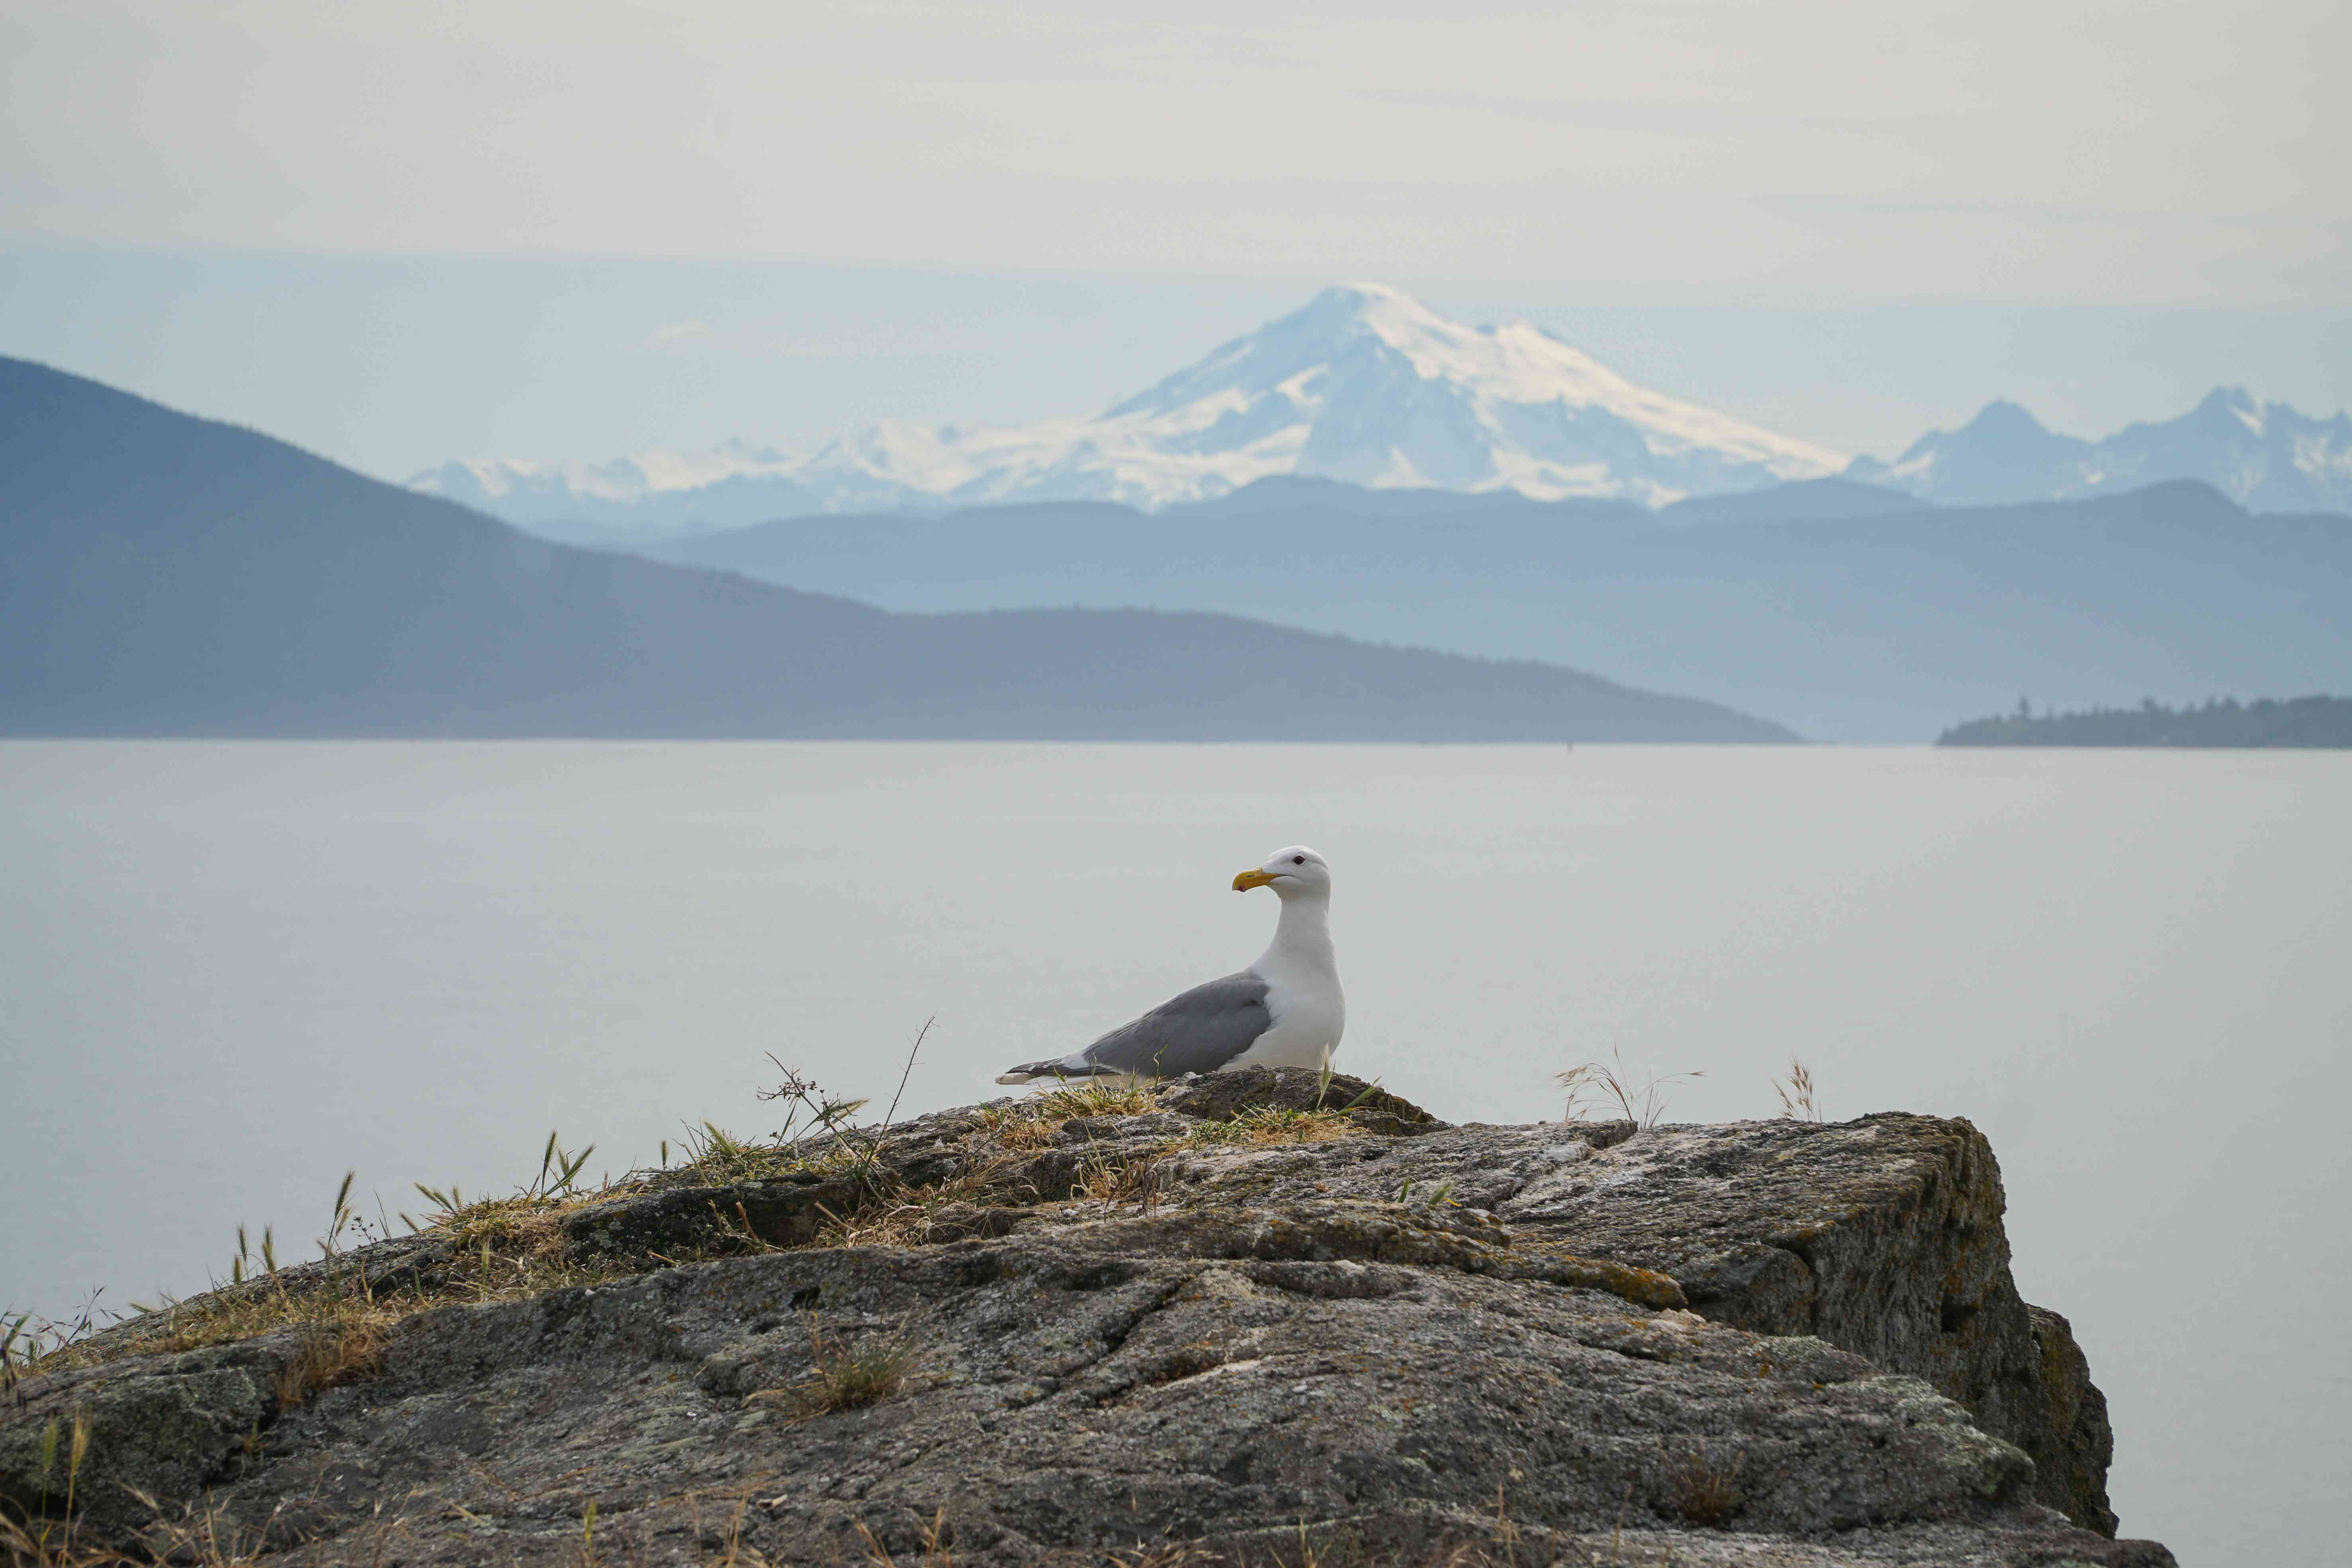 A seagull on a rock with Mt Baker in the background